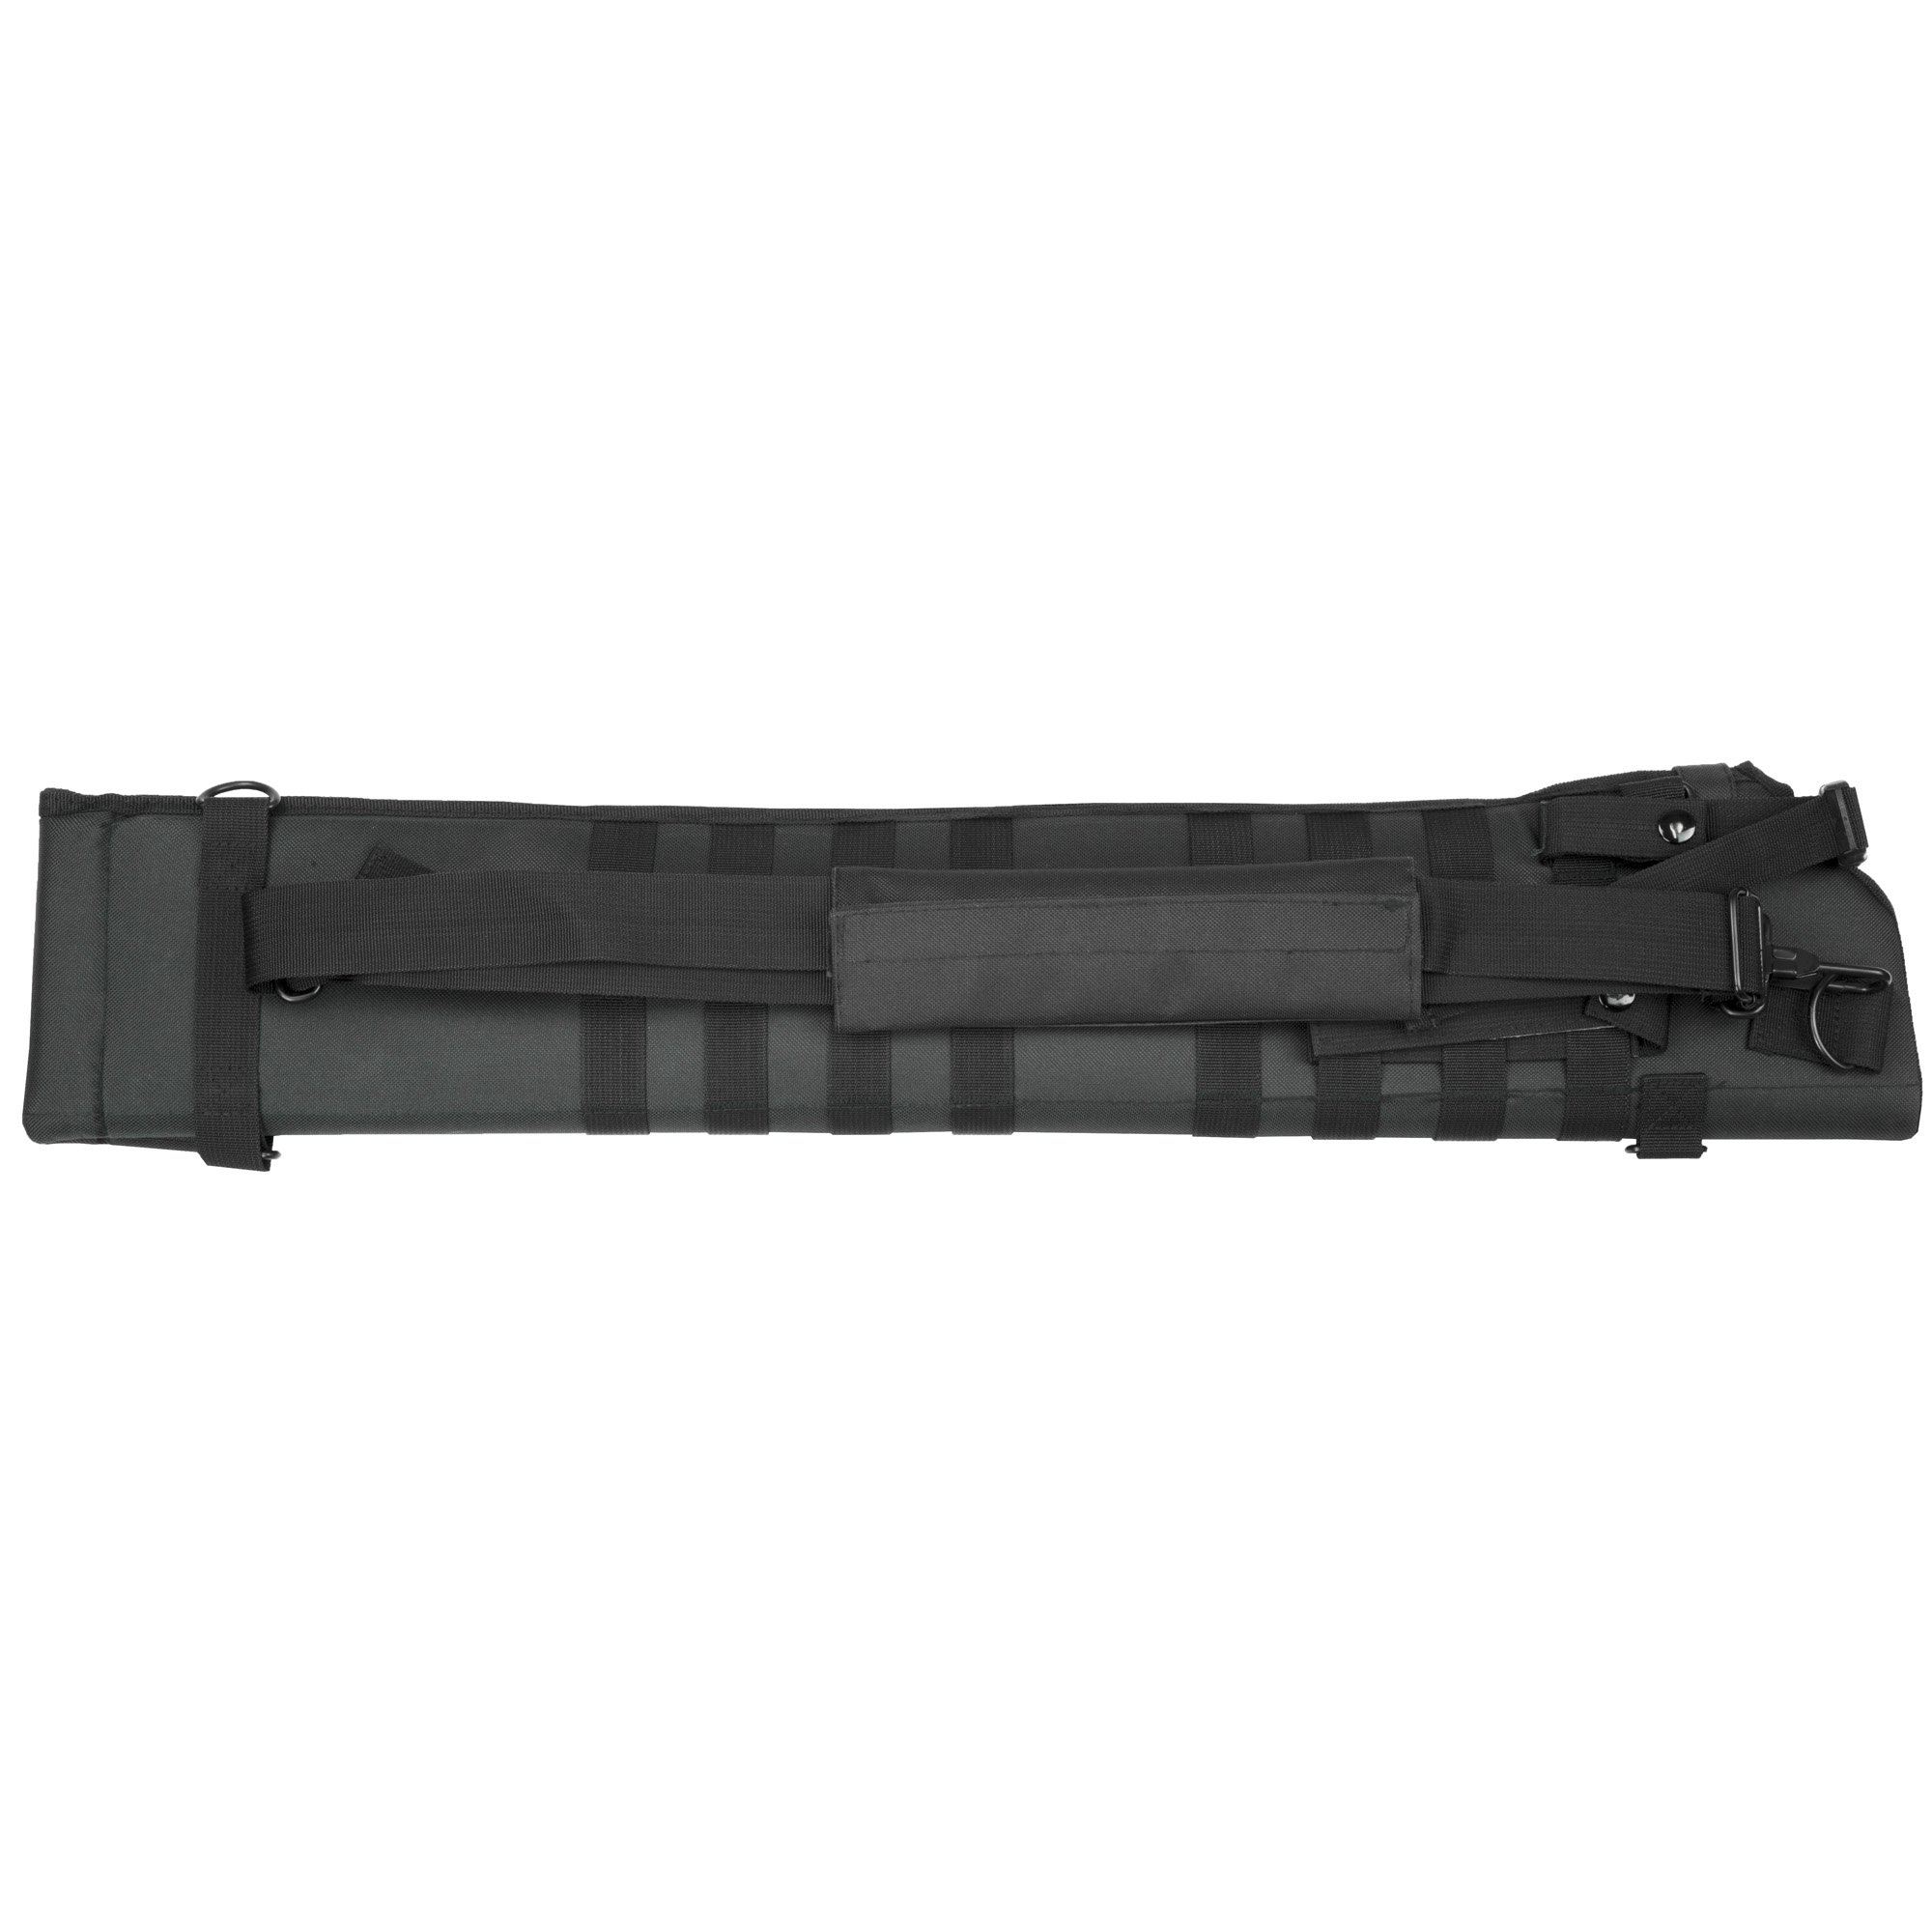 "The Tactical Shotgun Scabbard is designed for an easy"" comfortable"" and secure way of carrying a shotgun over the shoulder or for modular mounting onto MOLLE compatible gear."